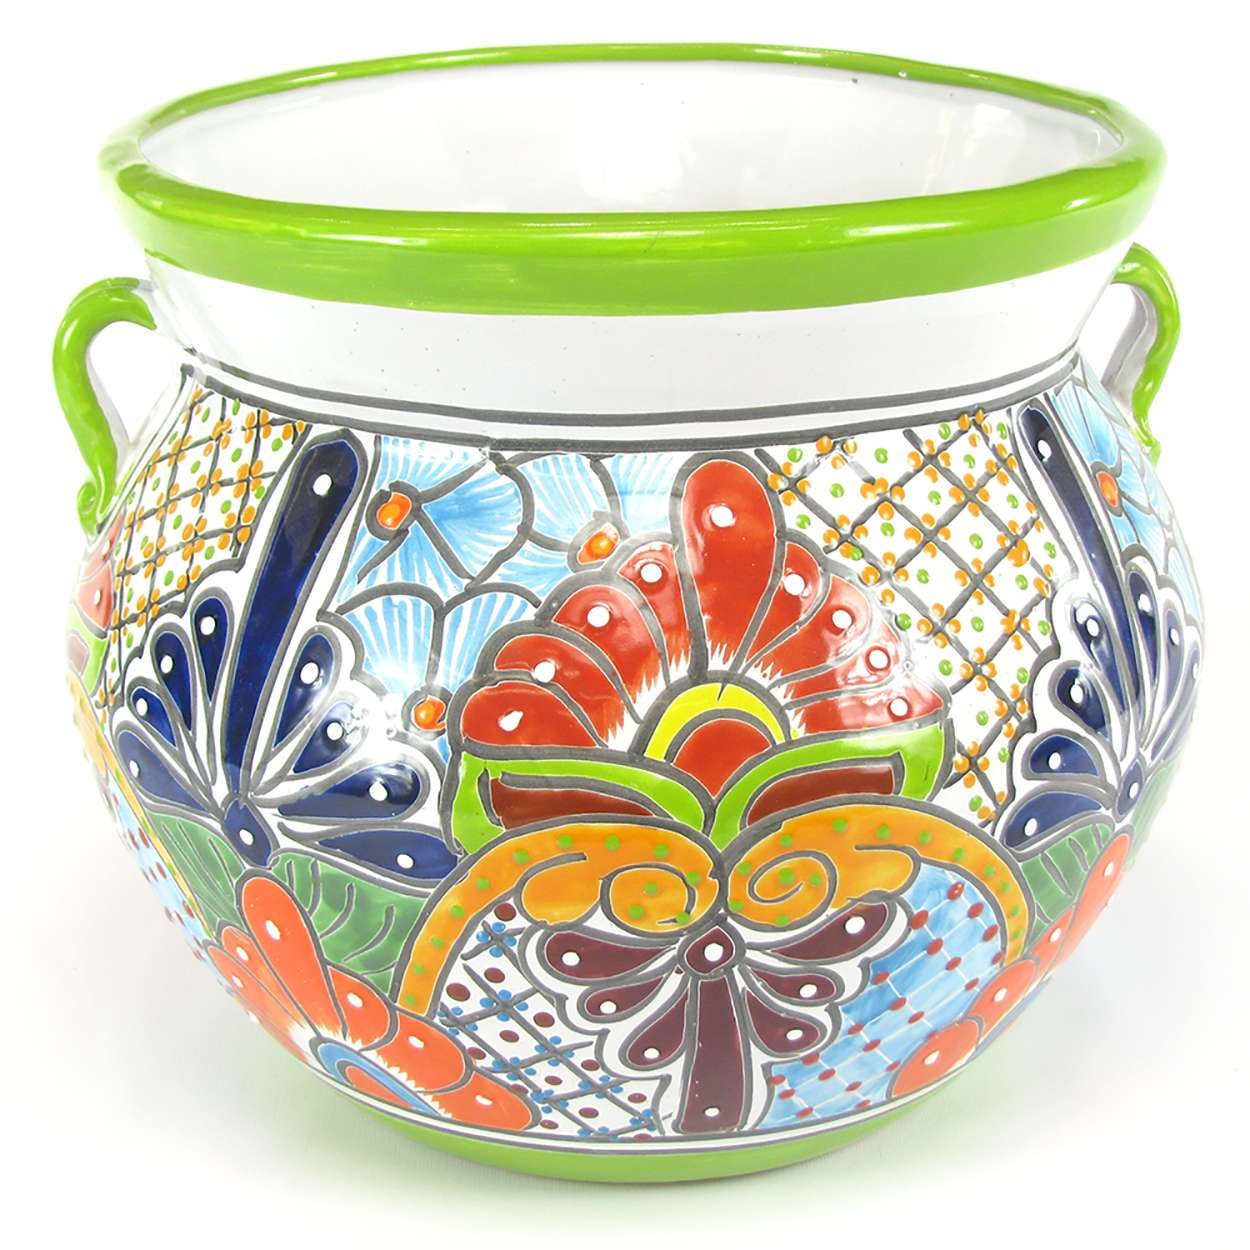 15in Talavera Pottery Planter Lime Green With Orange